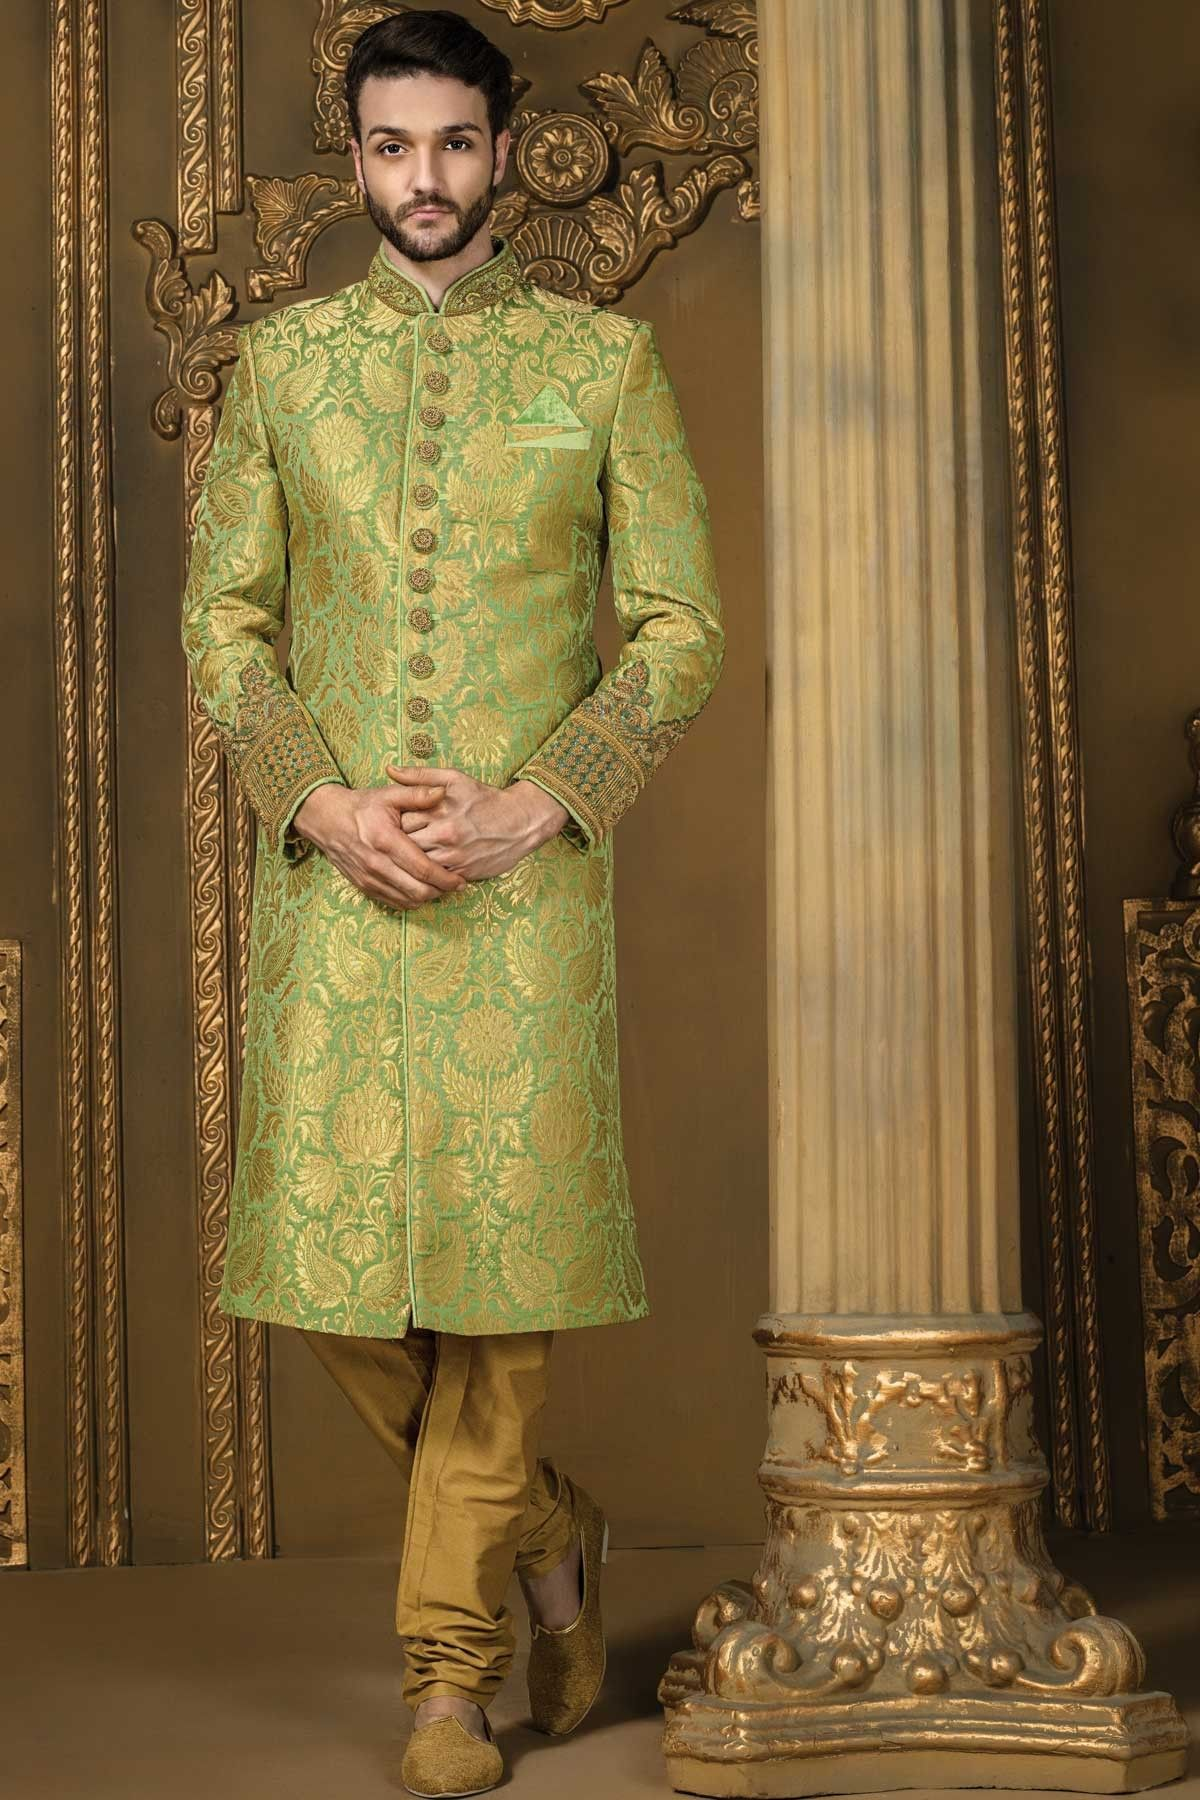 Pistachio green and gold khinkwab comely bandh gala